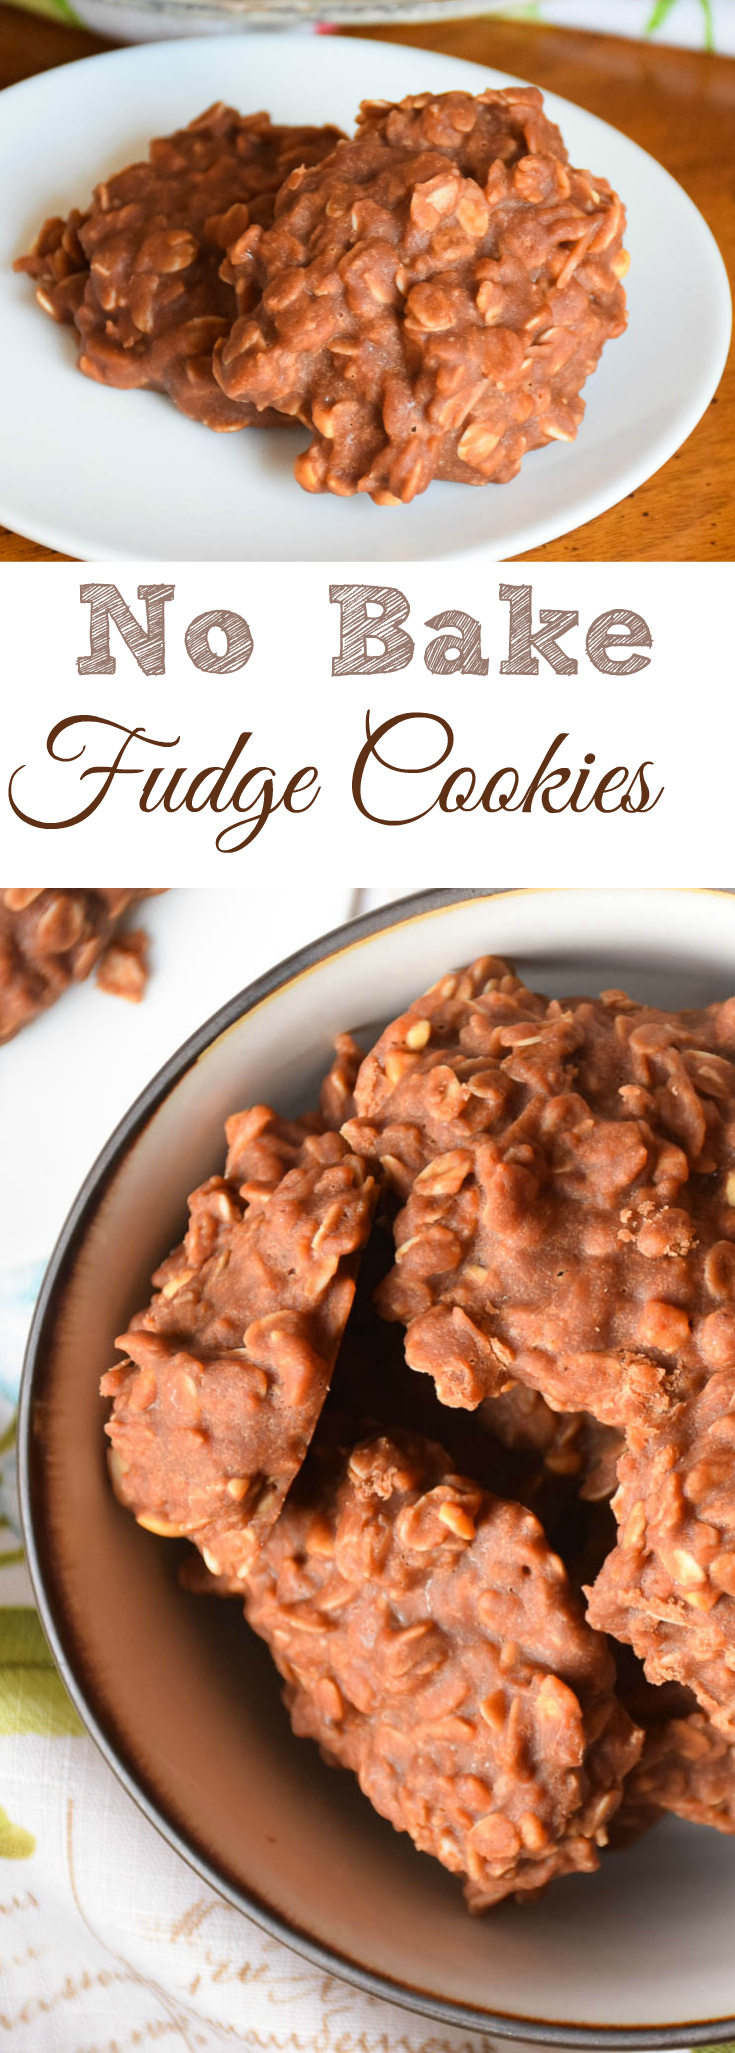 No Bake Fudge Cookies